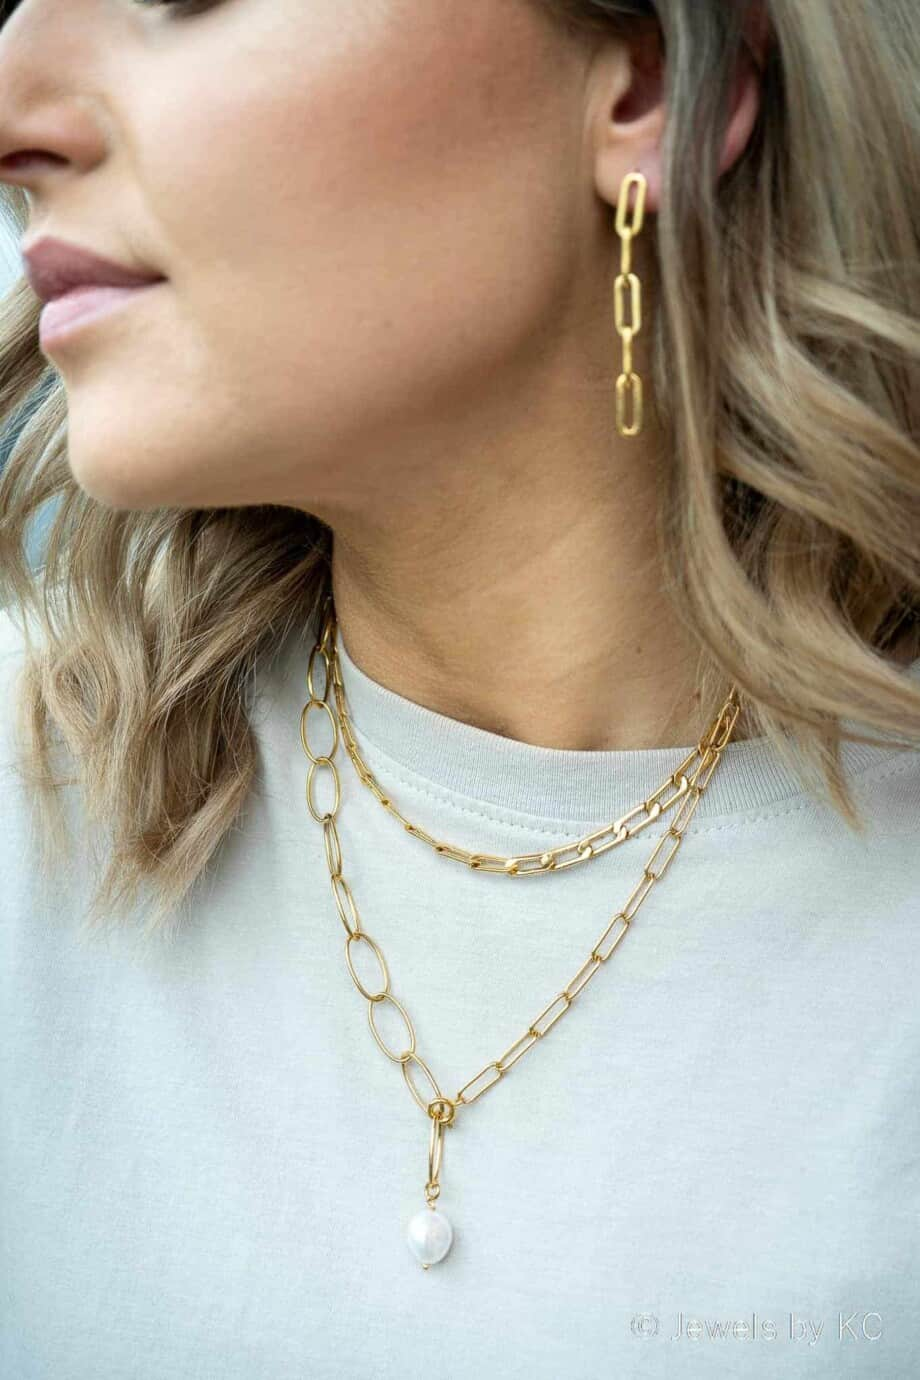 Gouden ketting 'Chain Pearl Chain' van Goldplated messing